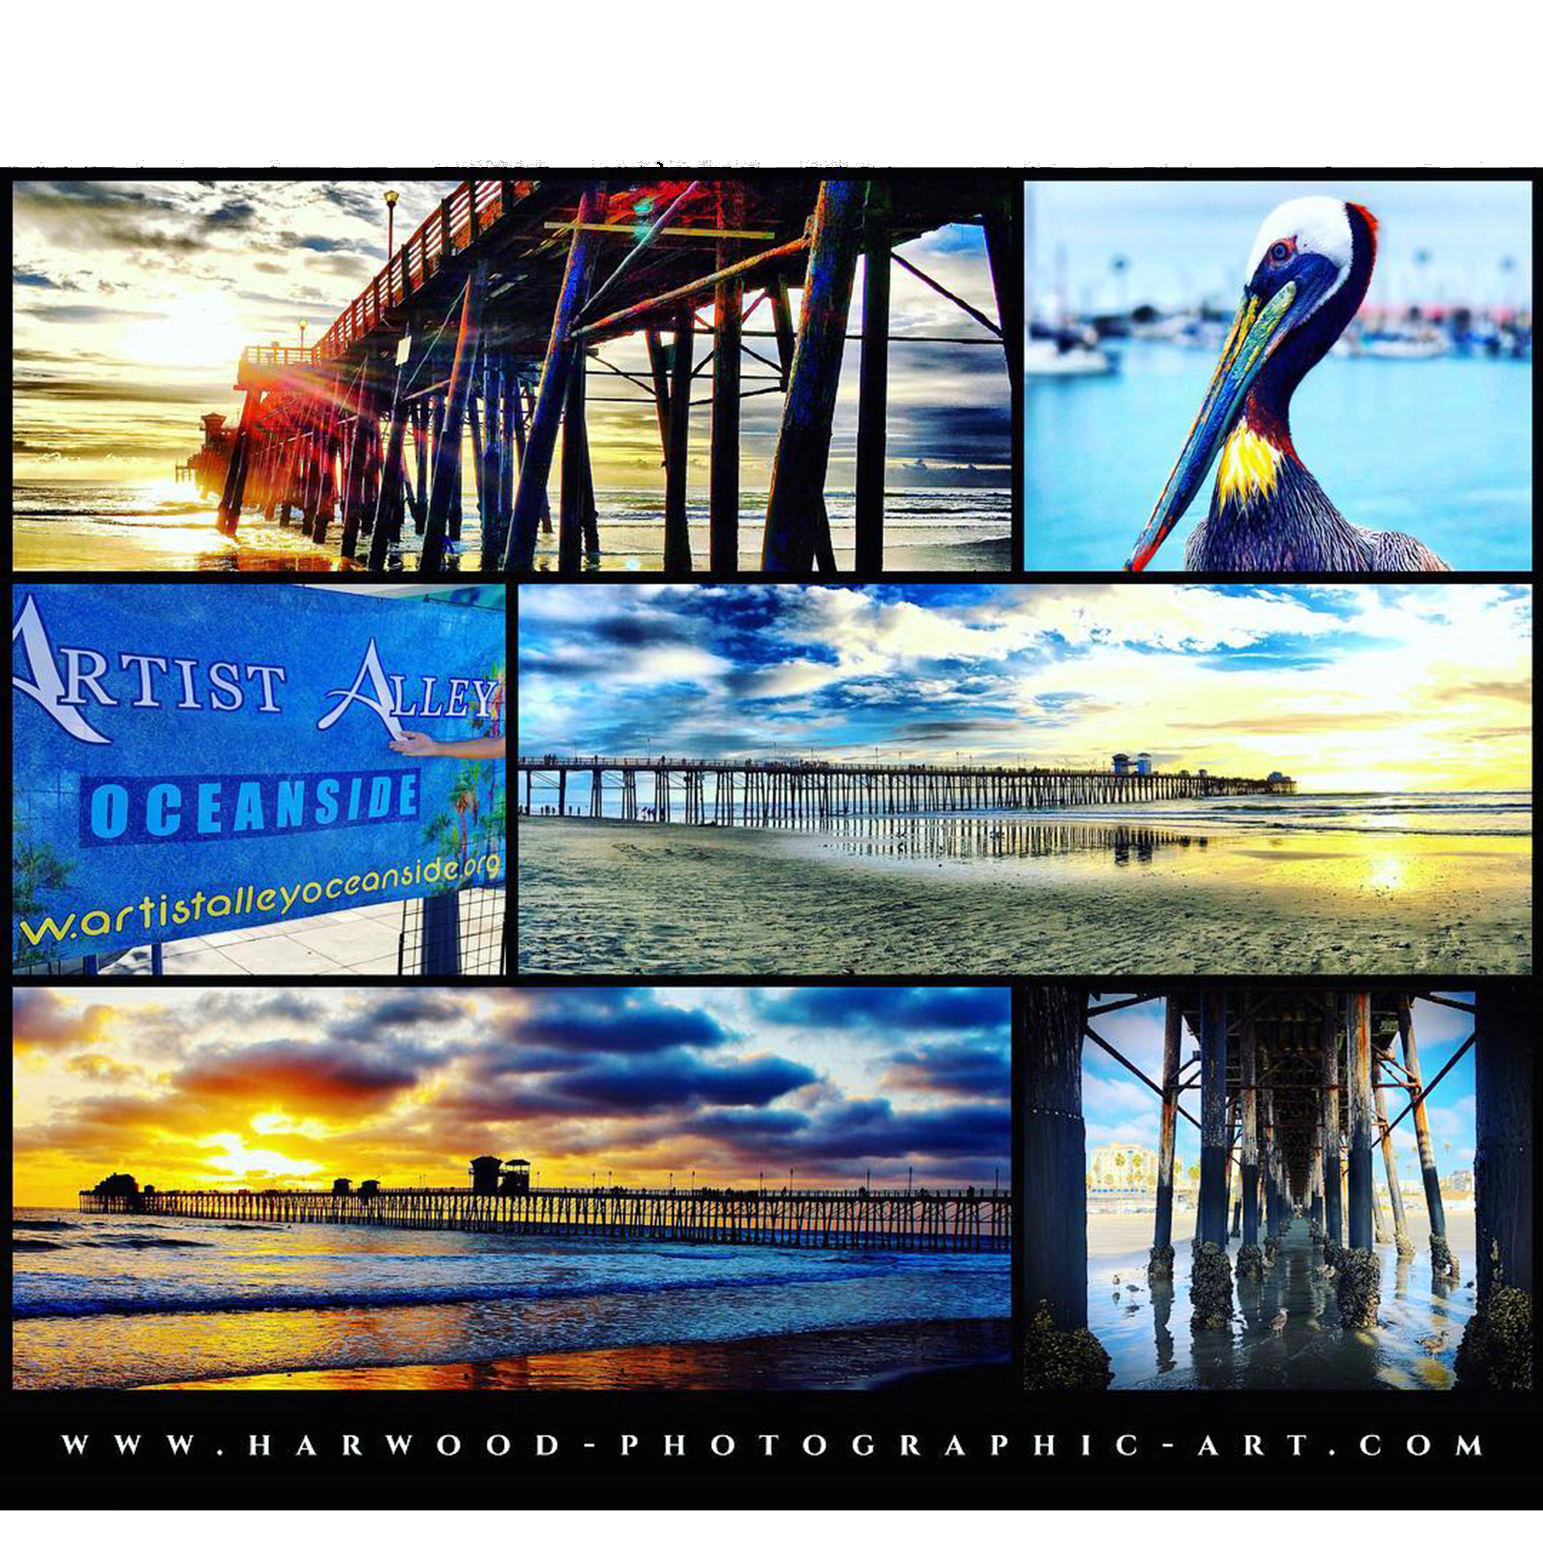 Harwood Photographic Art